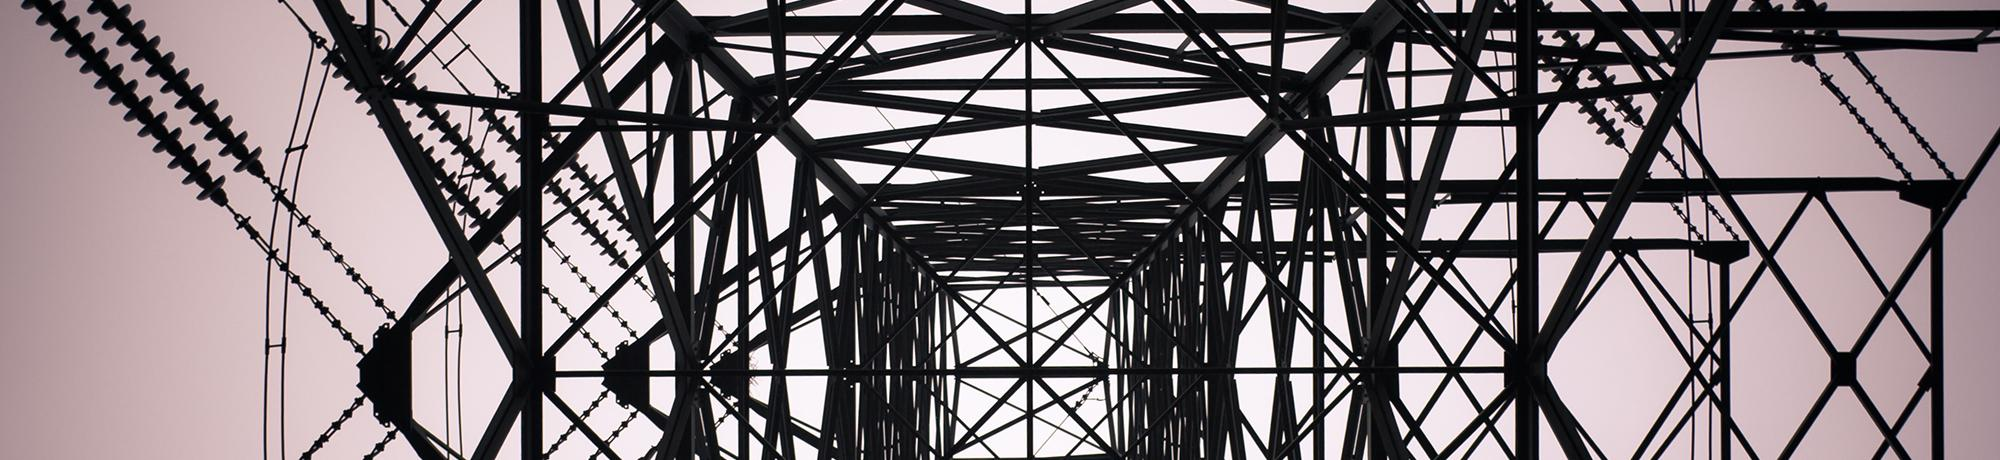 a photograph from underneath a telephone tower